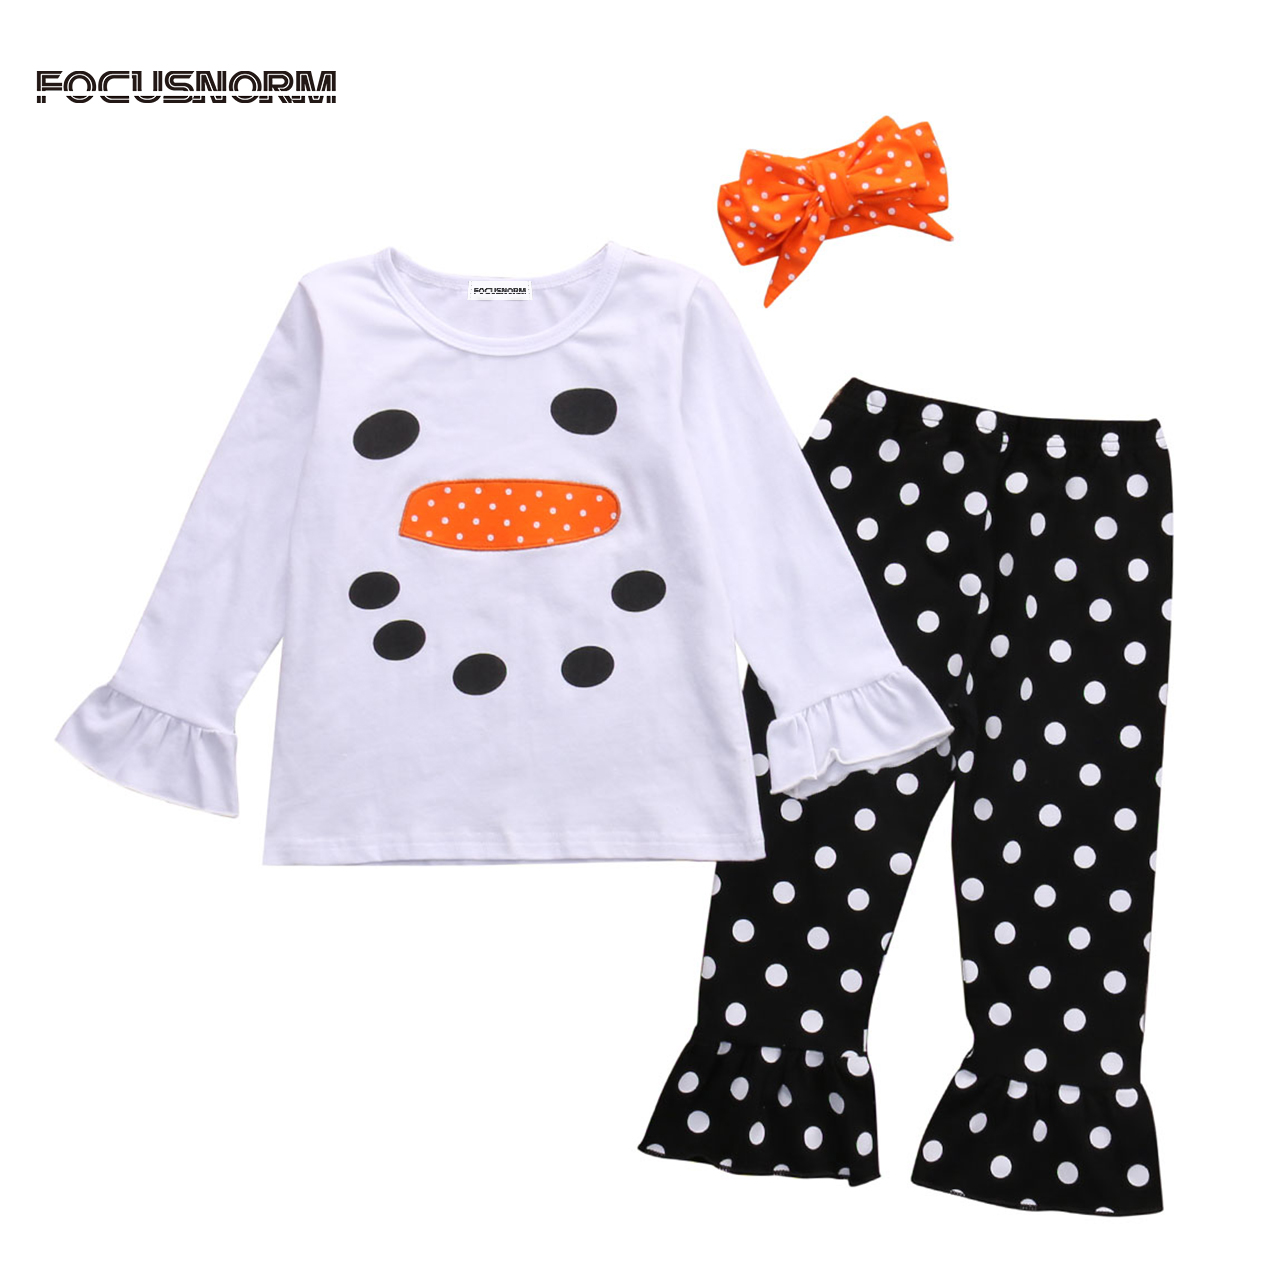 Toddler Kids Girls Clothes Cotton Long Sleeves T-Shirt Top+Pants +Headband Christmas Snowman Ruffle Polka Dot Outfits liligirl baby girls sport clothes sets for toddler cotton print mickey t shirt polka dot pants suit kids tops trousers cloting